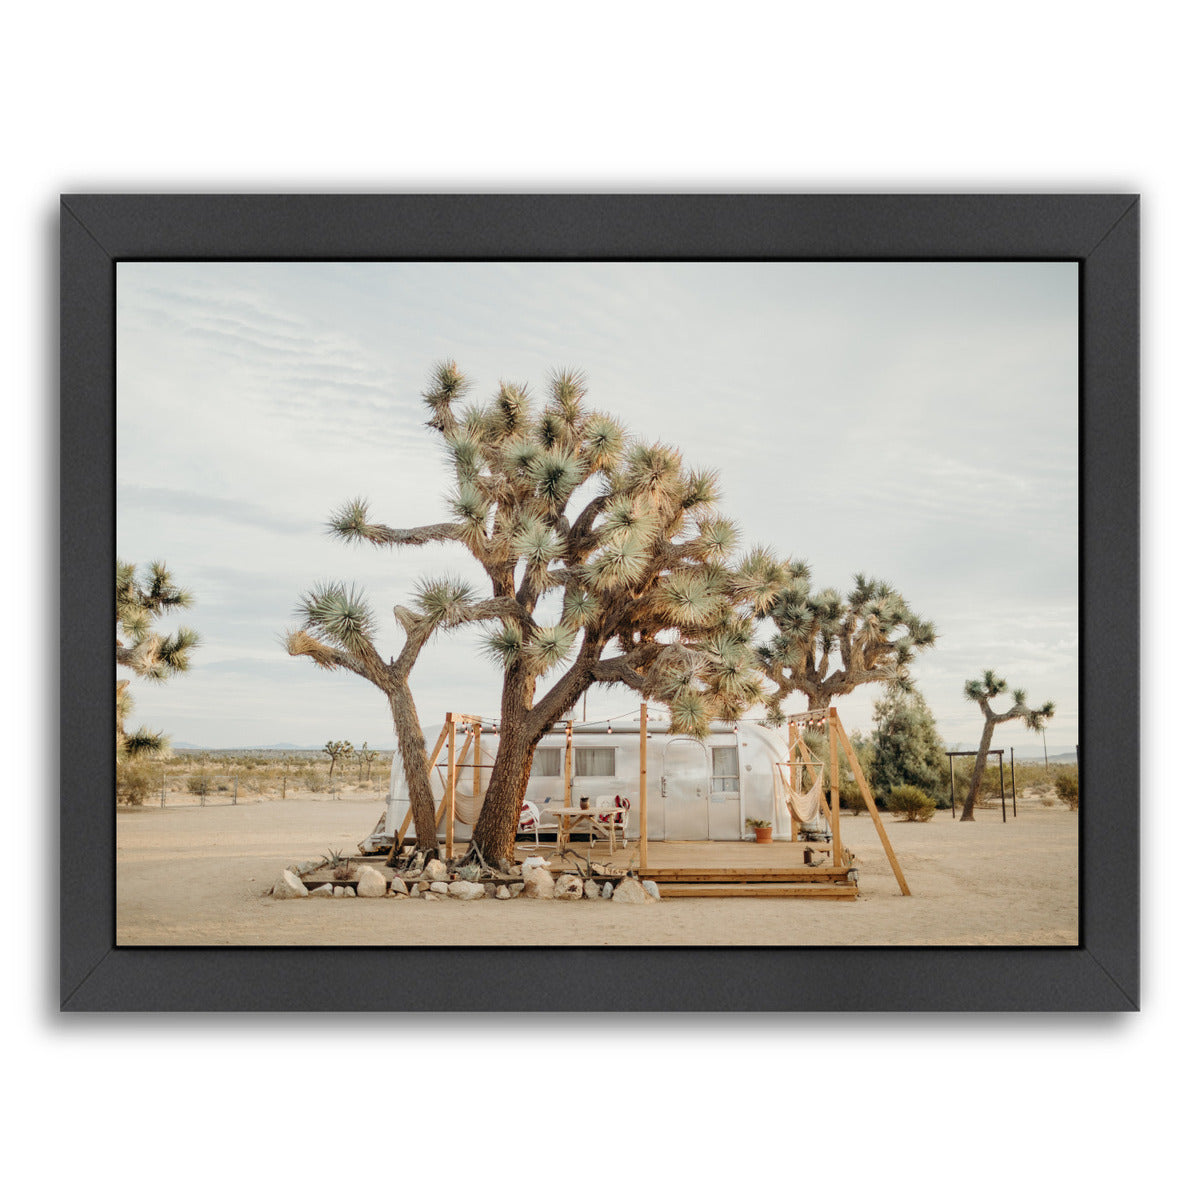 Joshua Tree Acres By Natalie Allen - Black Framed Print - Wall Art - Americanflat